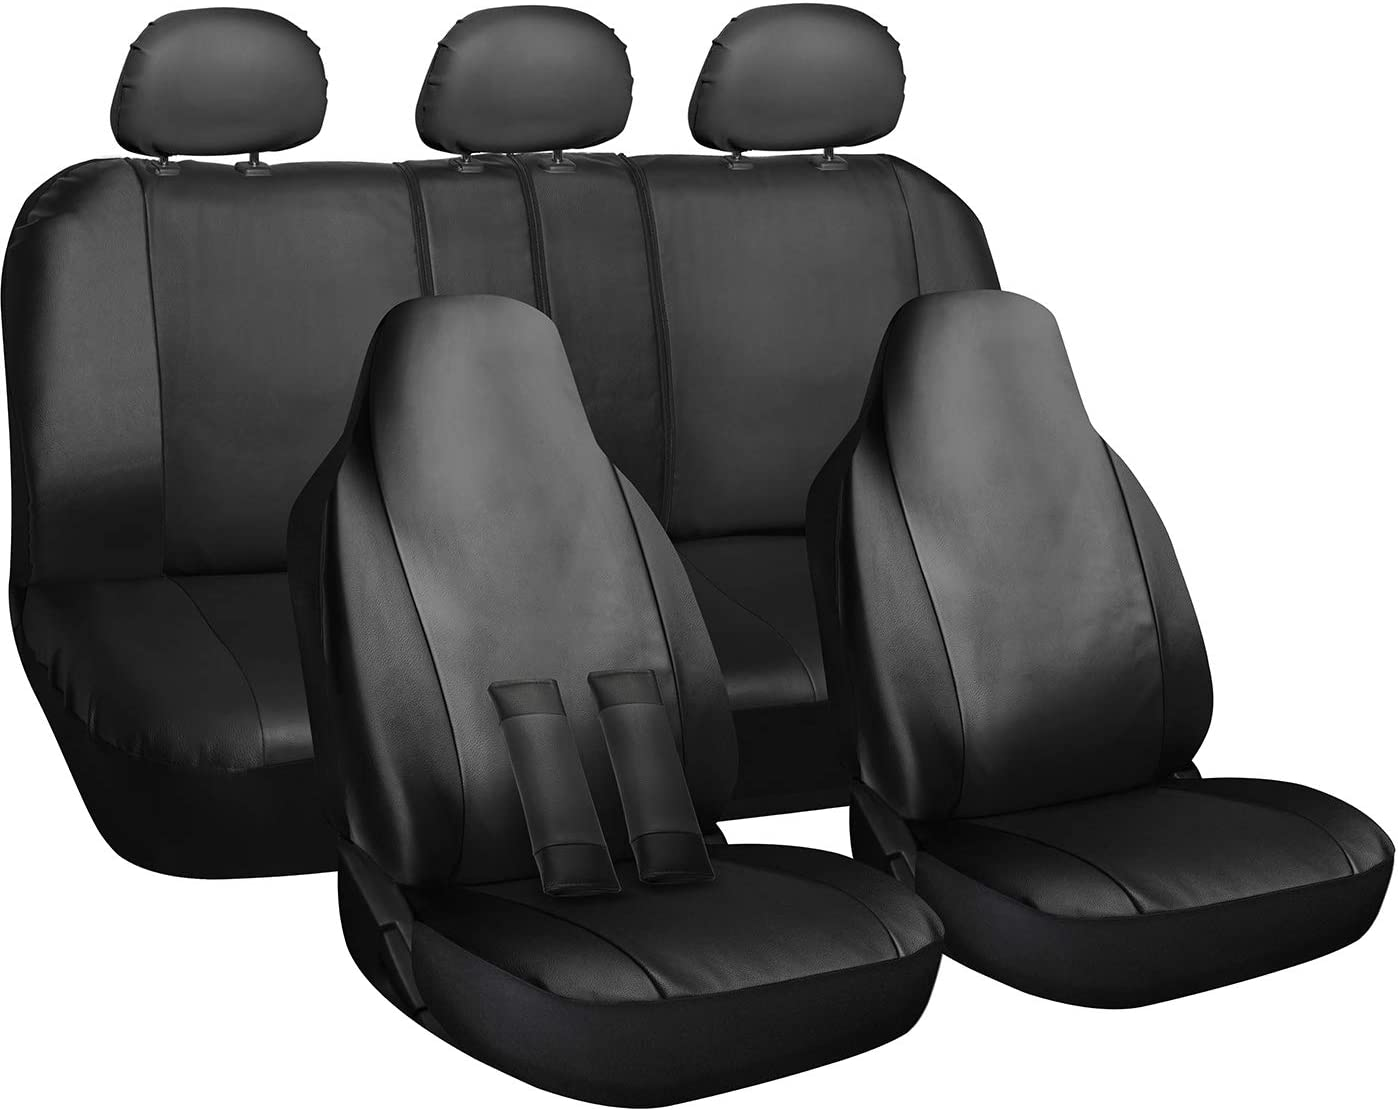 OxGord Faux Leather Solid Black Auto Seat Covers Set - Airbag - Universal Fit for Car, Truck, or SUV - Seat Belt Pads